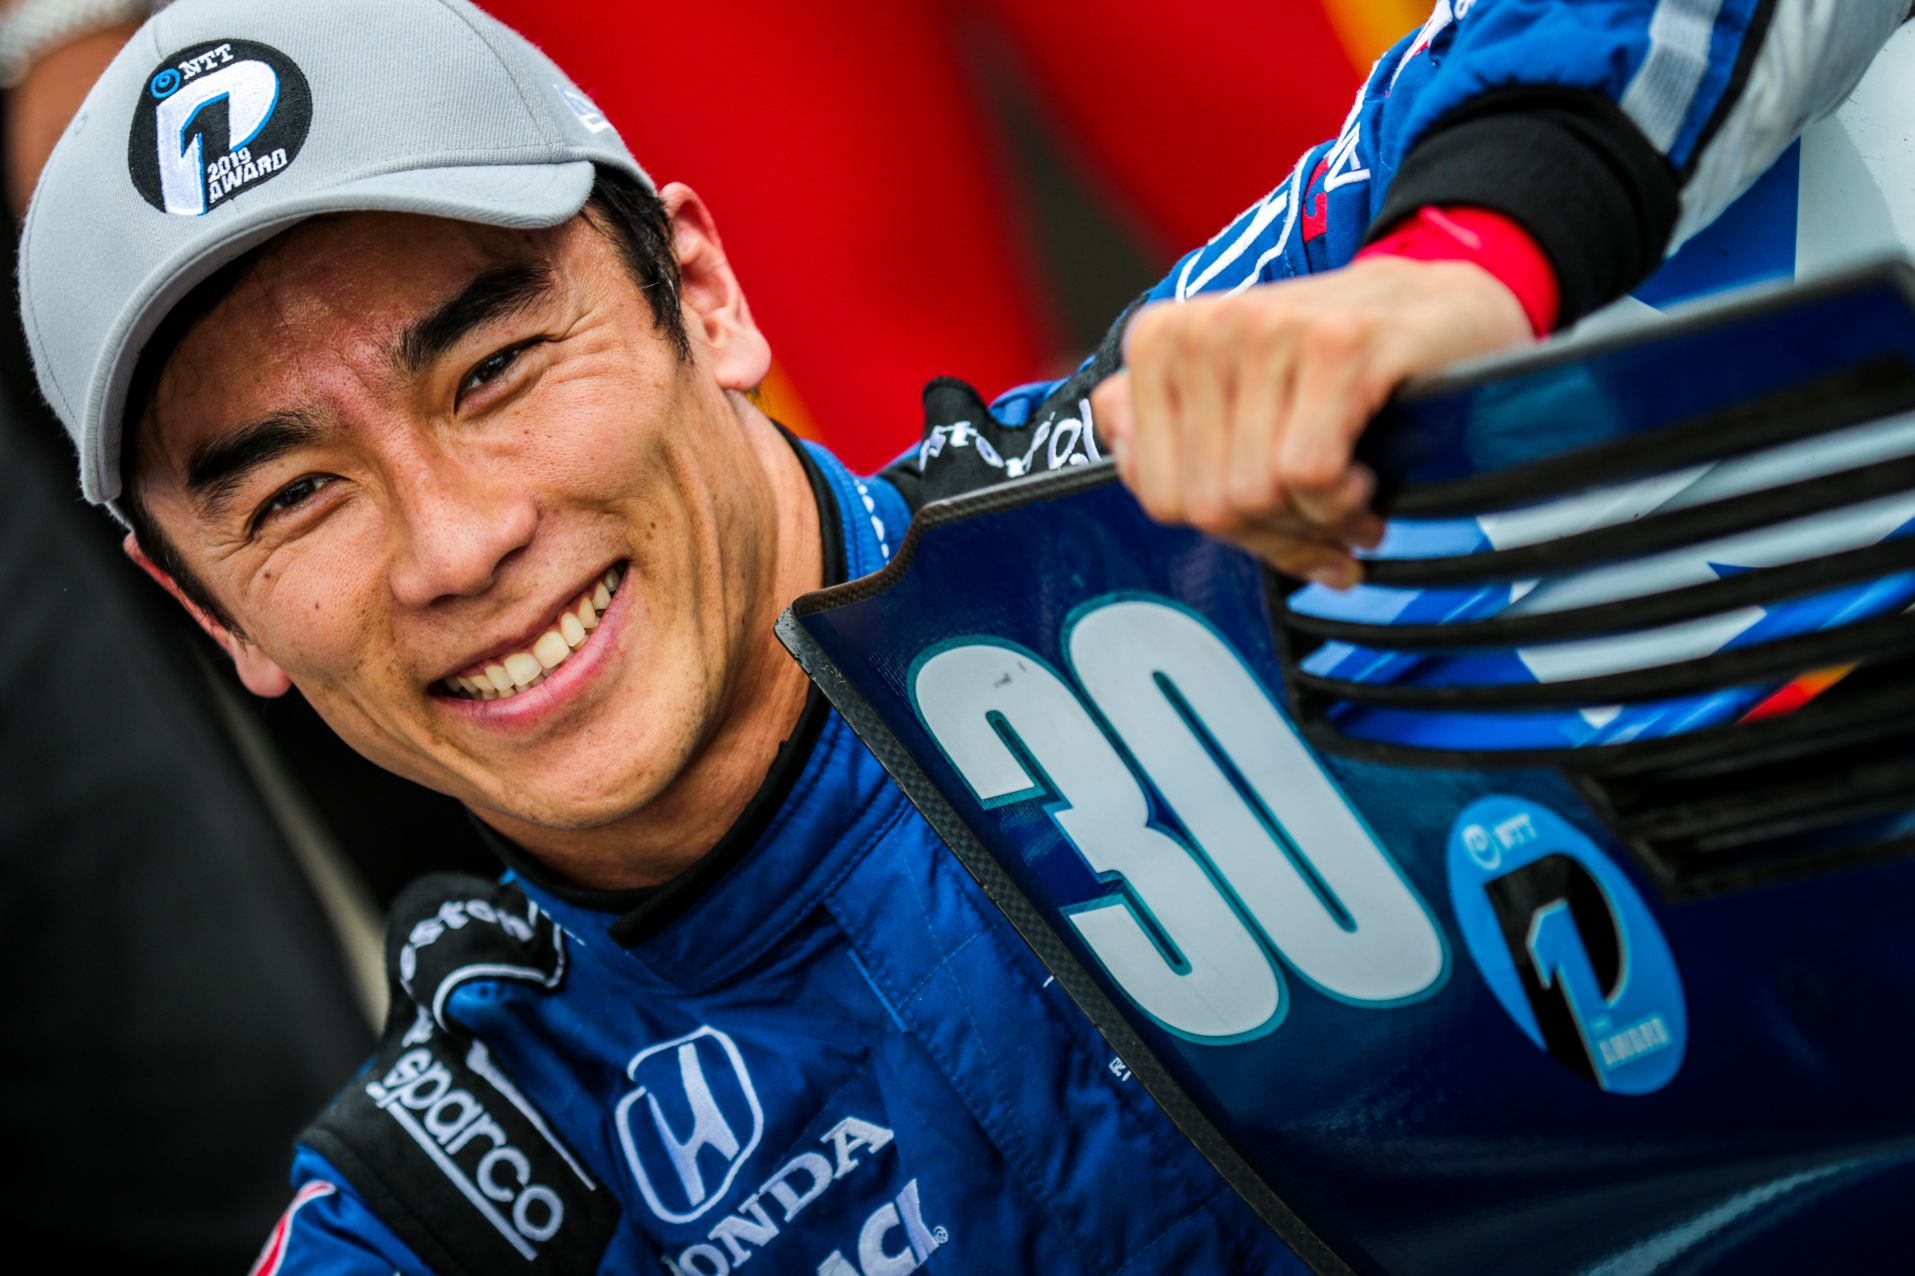 2019 polesitter and race winner Takuma Sato returns to Barber Motorsports Park. © [Andy Clary/ Spacesuit Media]